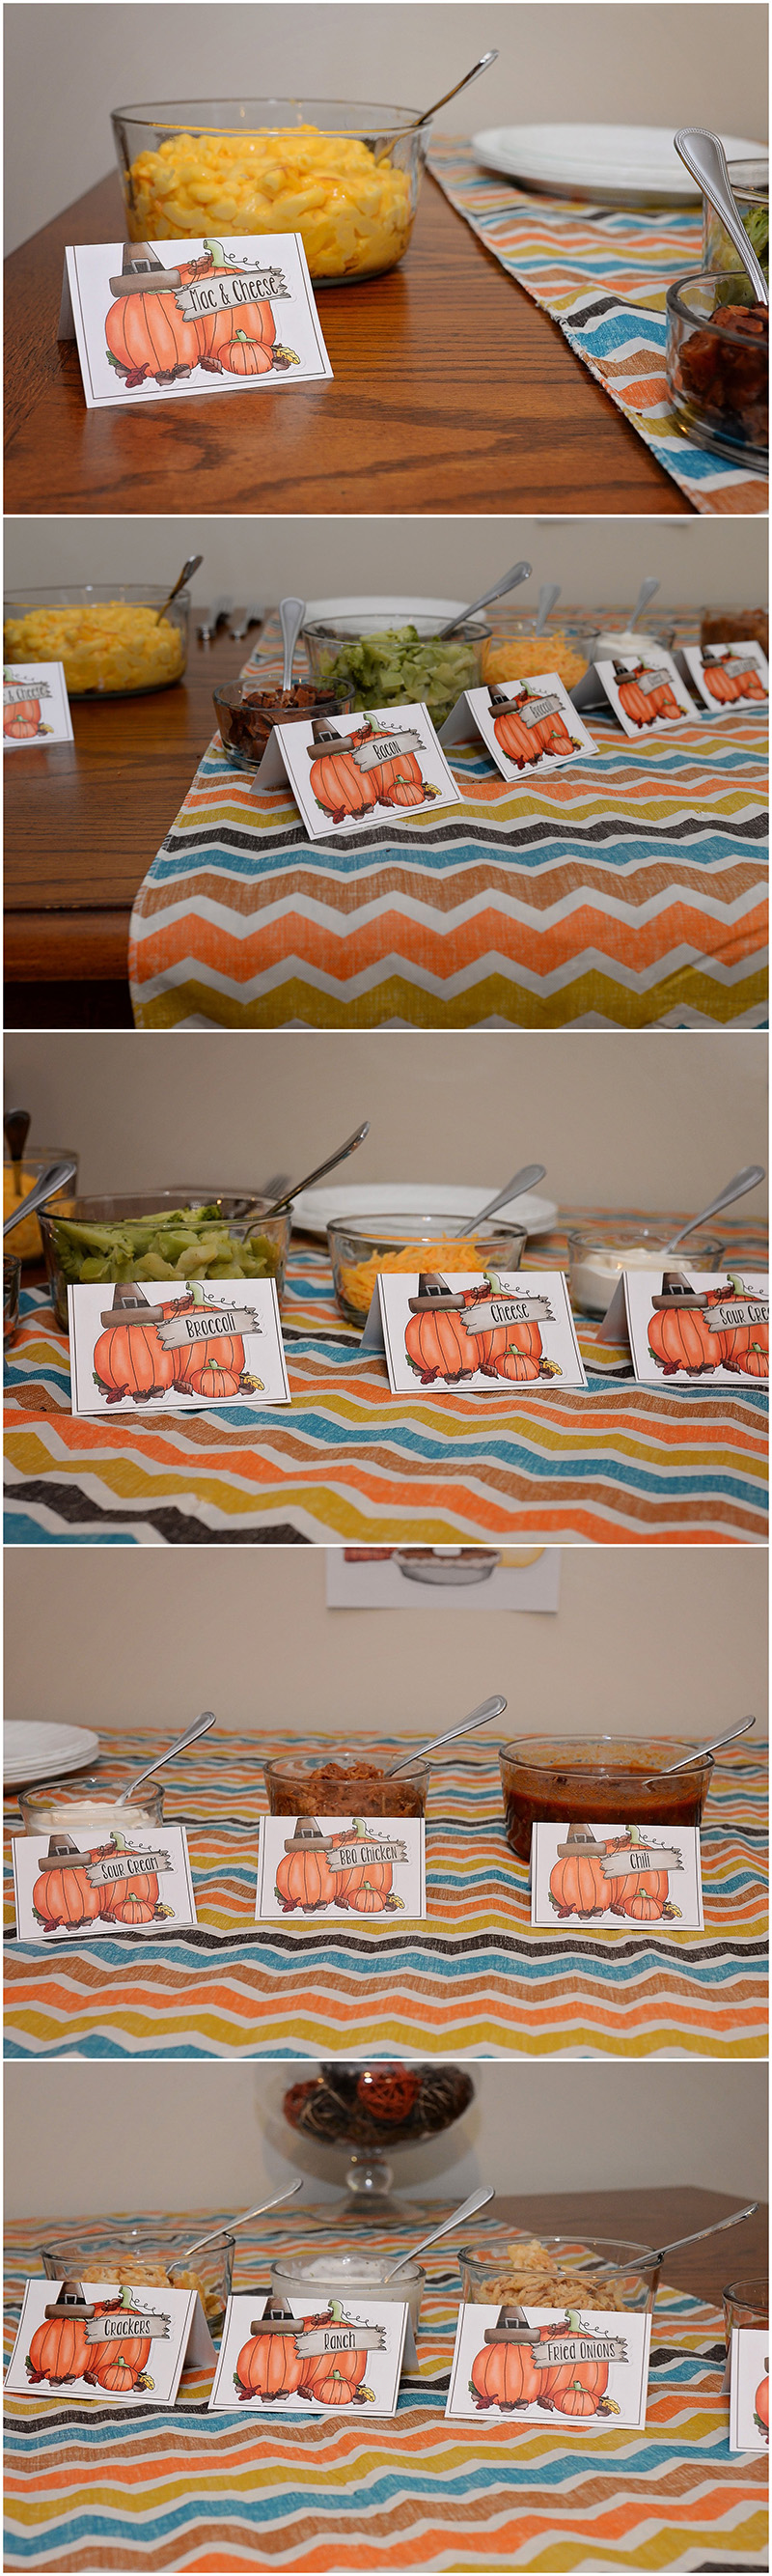 Macaroni and Cheese Bar for entertaining + FREE Printable ...